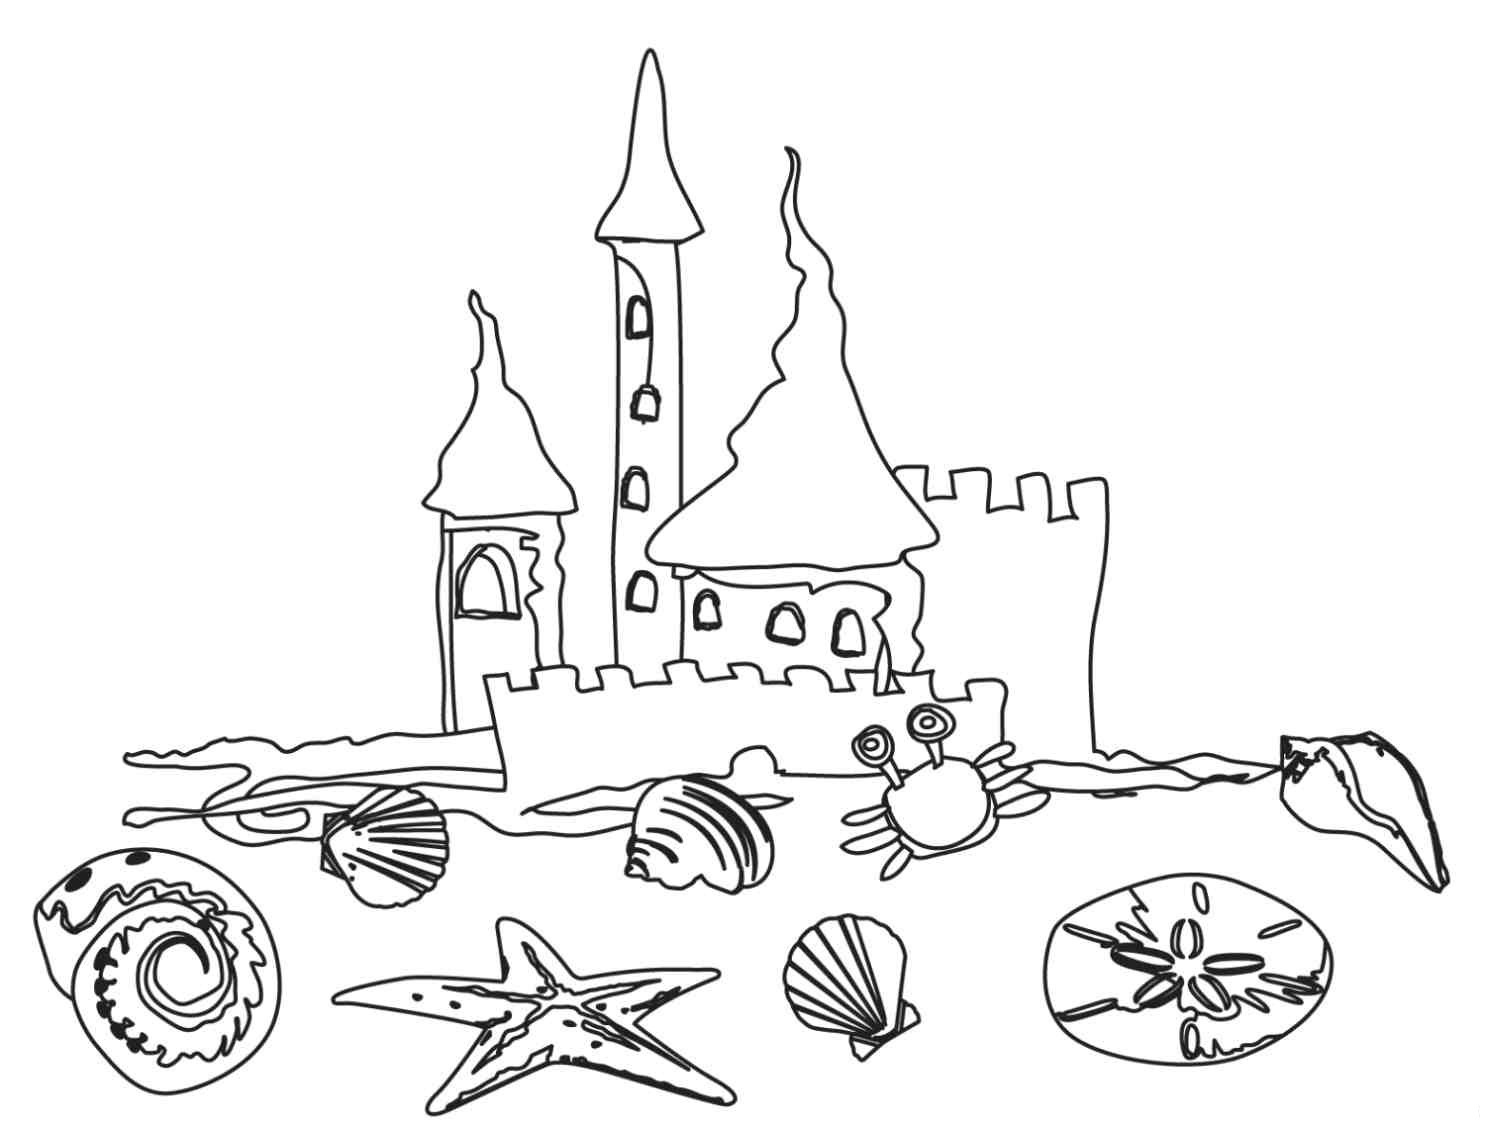 coloring beach pages beach coloring pages downloadable full documents k5 beach pages coloring